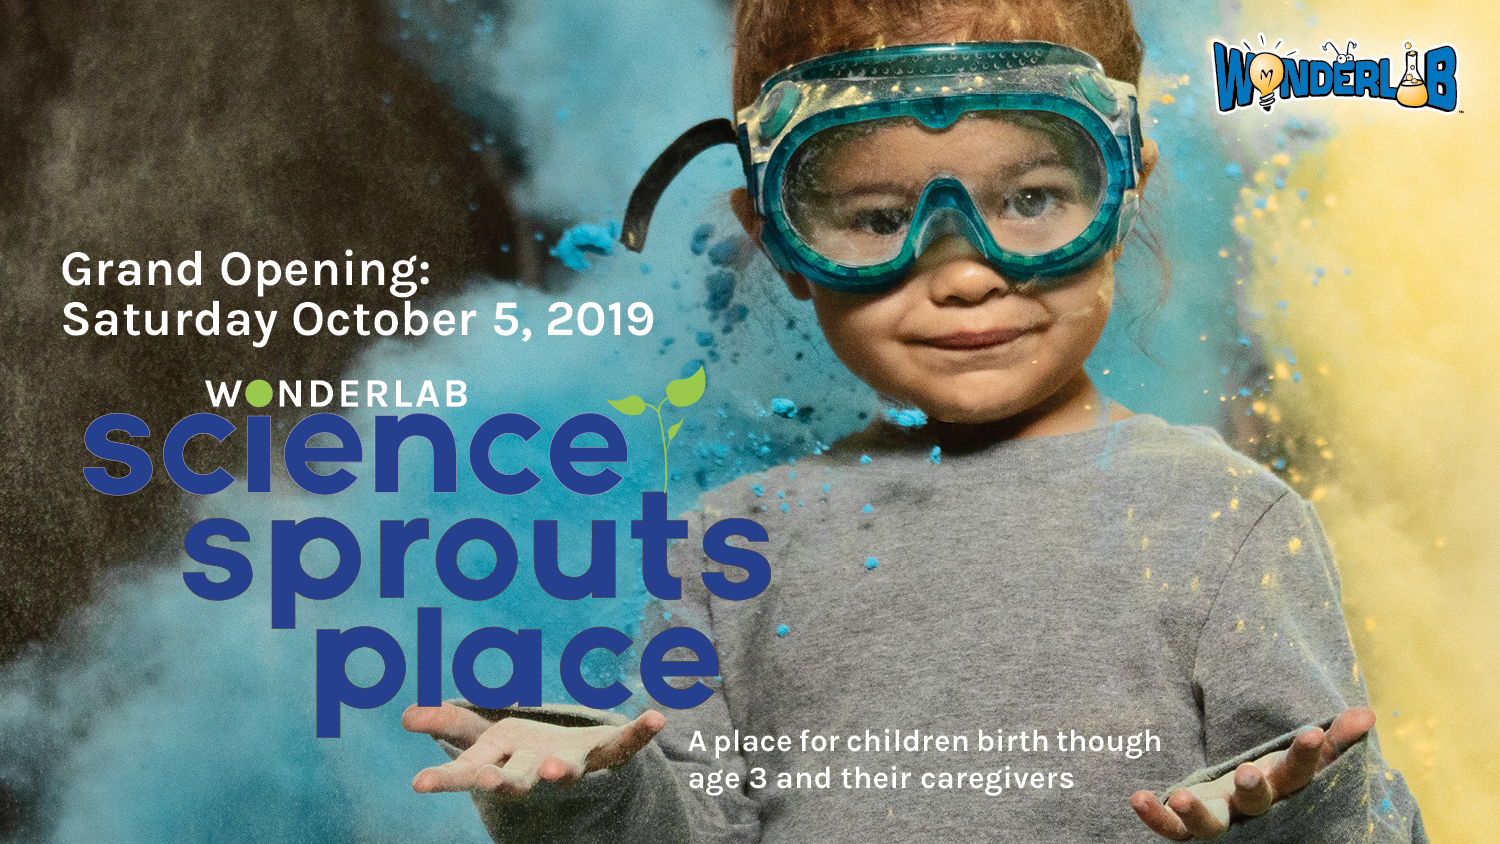 Grand Opening of Science Sprouts Place!   WonderLab Museum